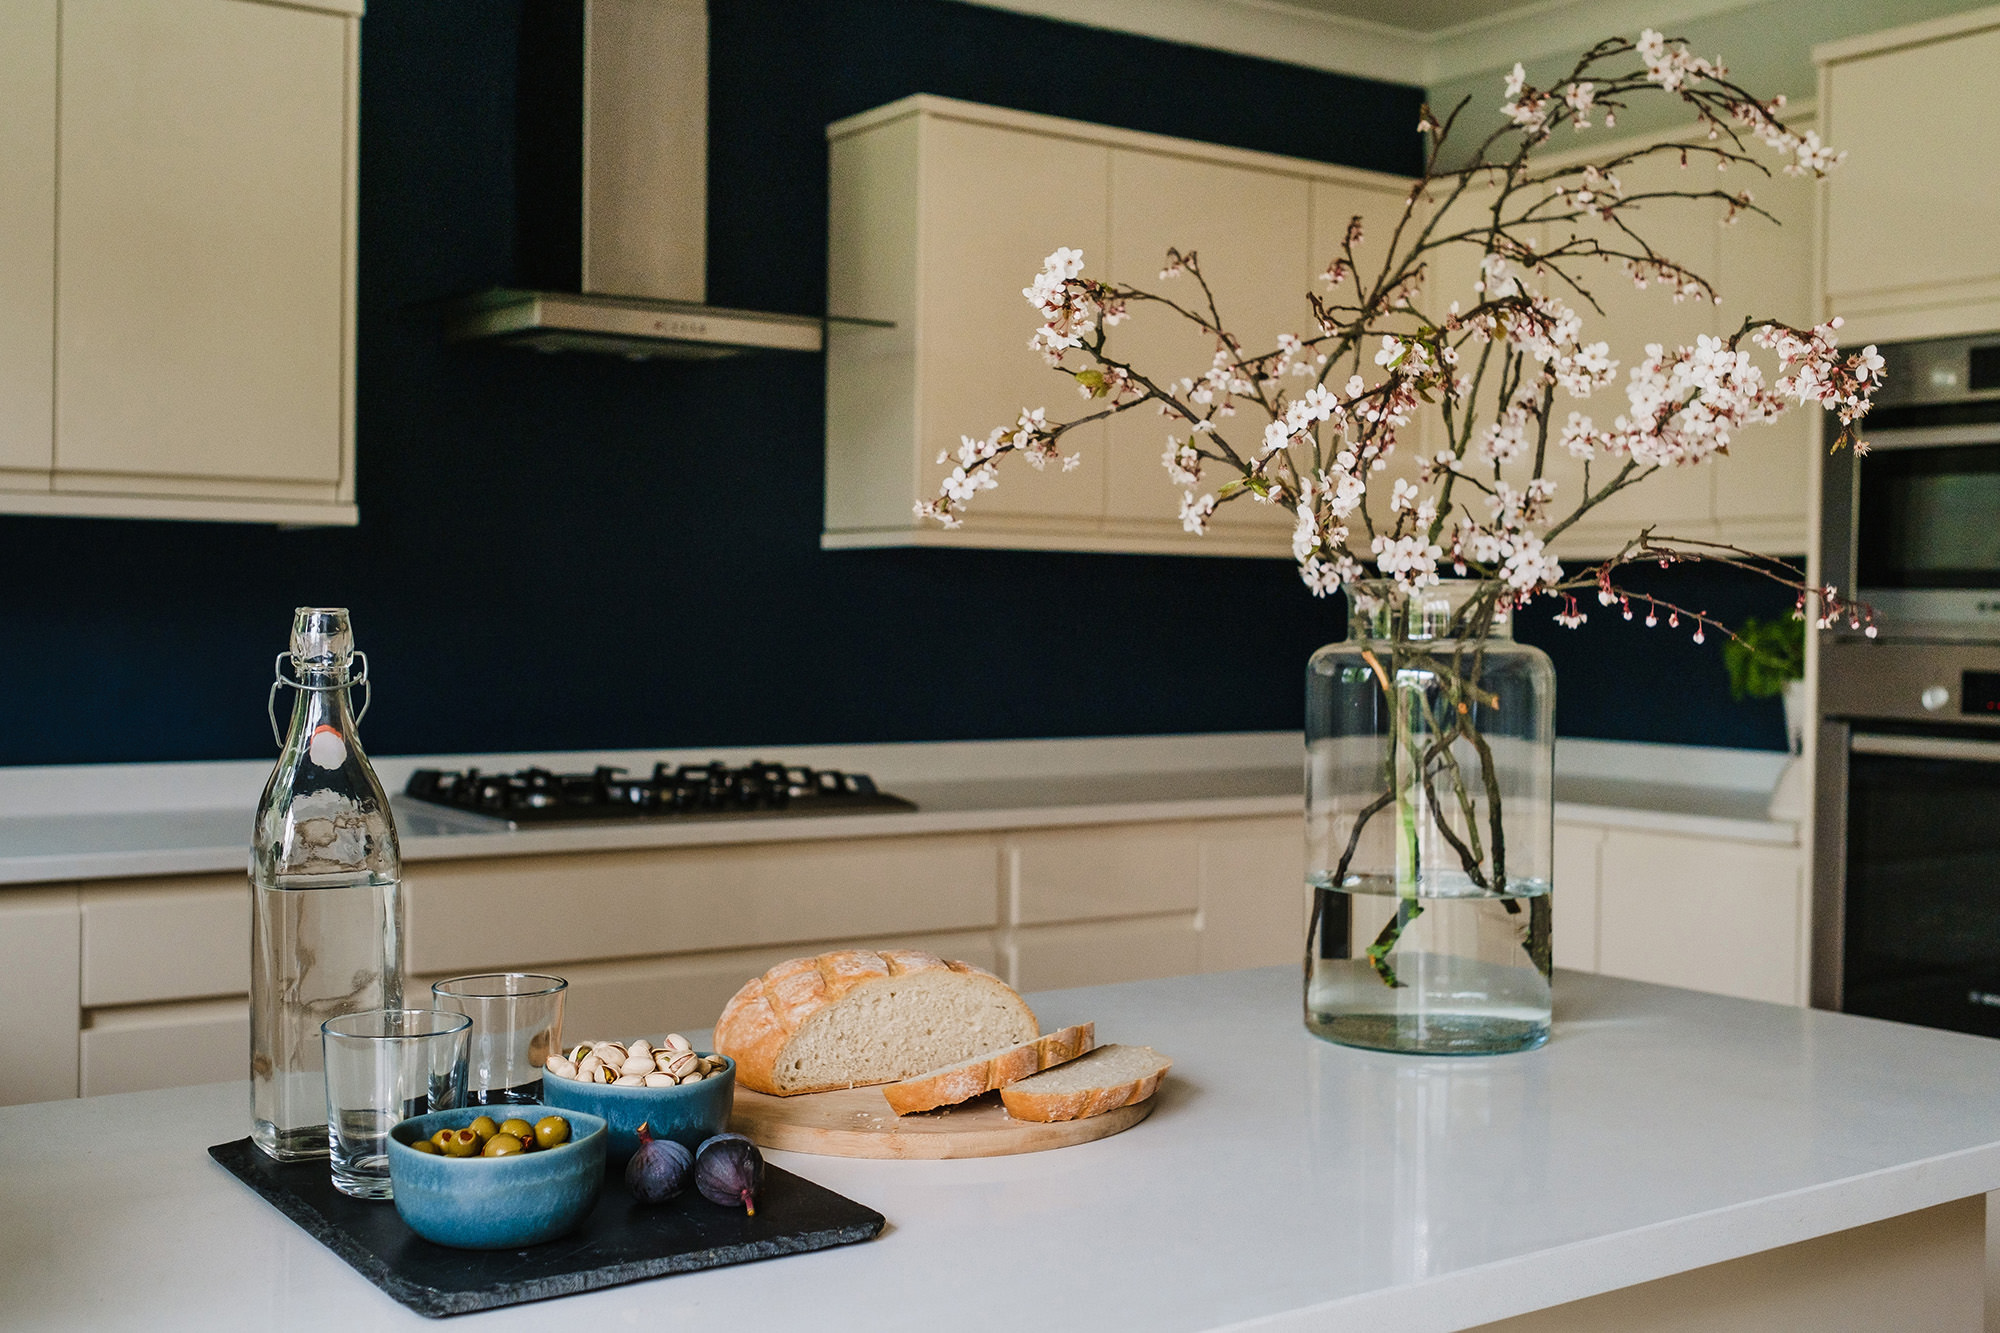 kitchen detail bread and styling